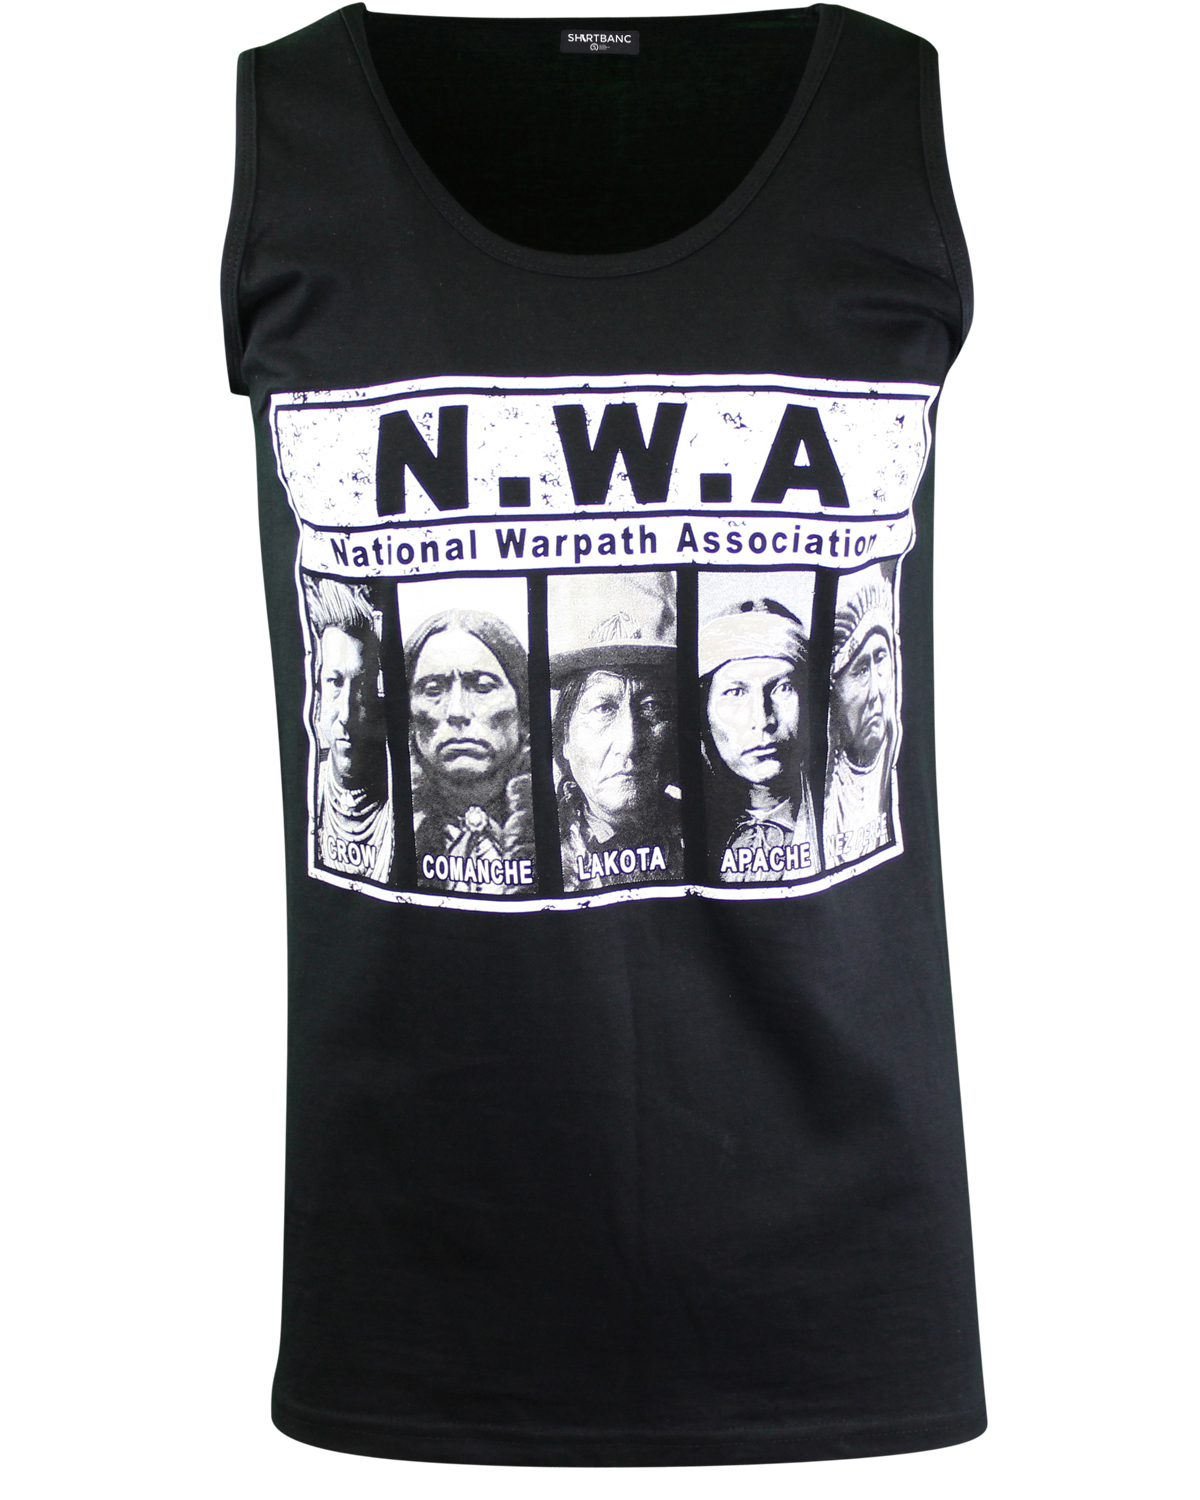 Native american mens t shirts by shirtbanc ebay for Where can i sell t shirts